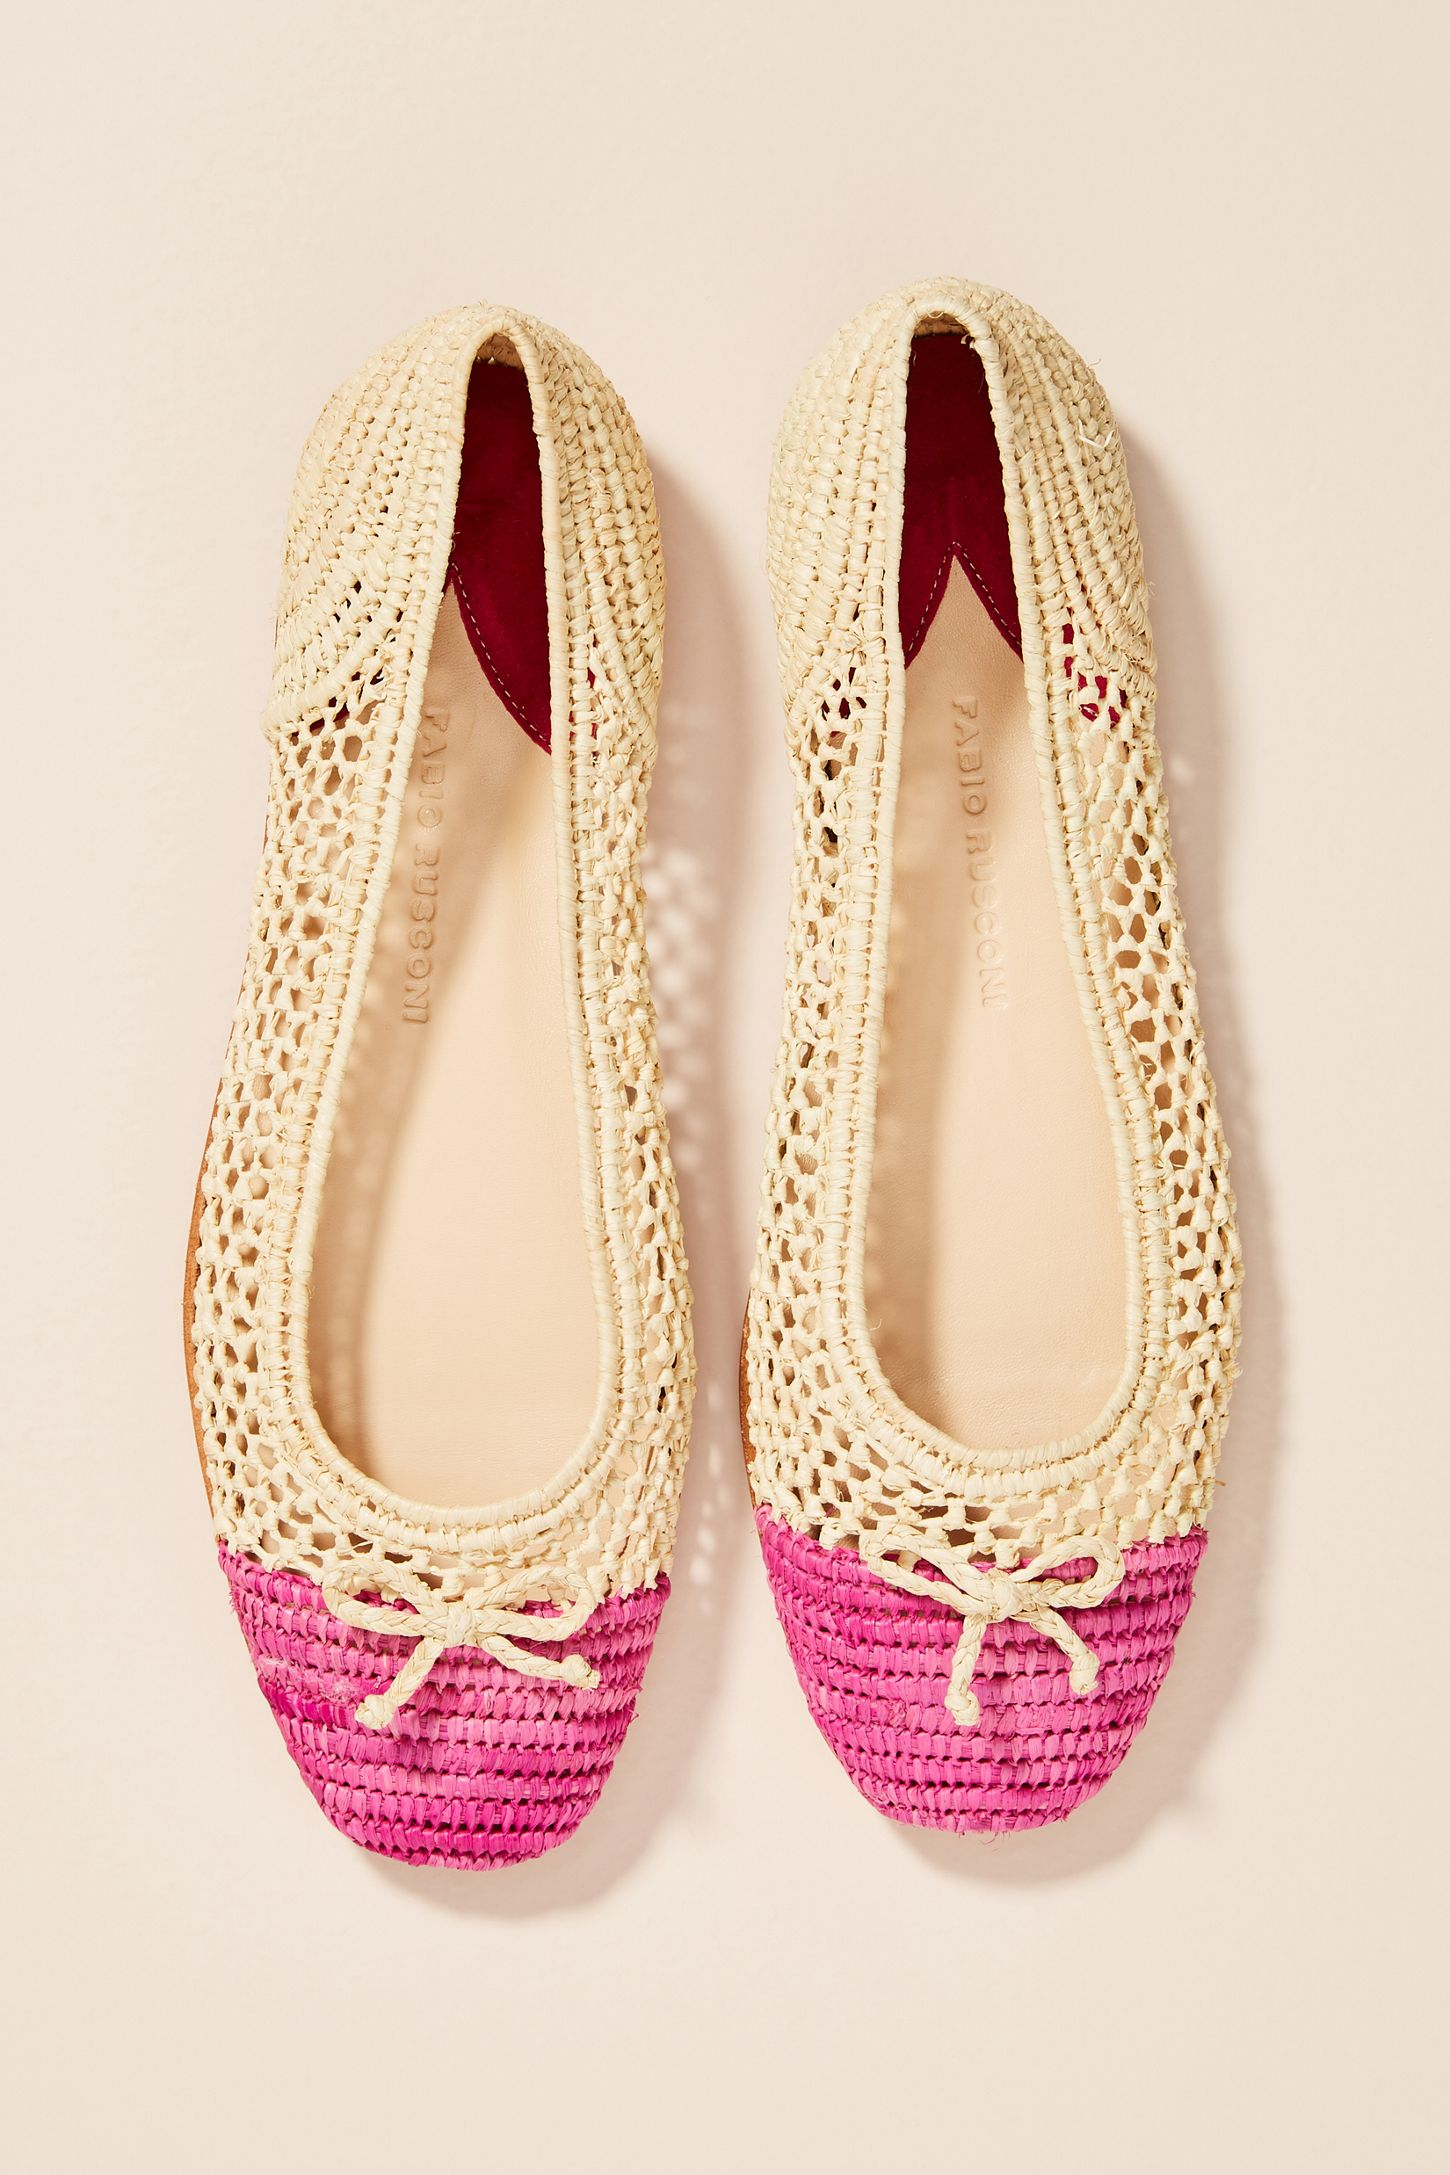 85fd1bc9e3ab Fabio Rusconi Amina Woven Ballet Flats. Tap image to zoom. Hover your mouse  over an image to zoom. Double Tap to Zoom